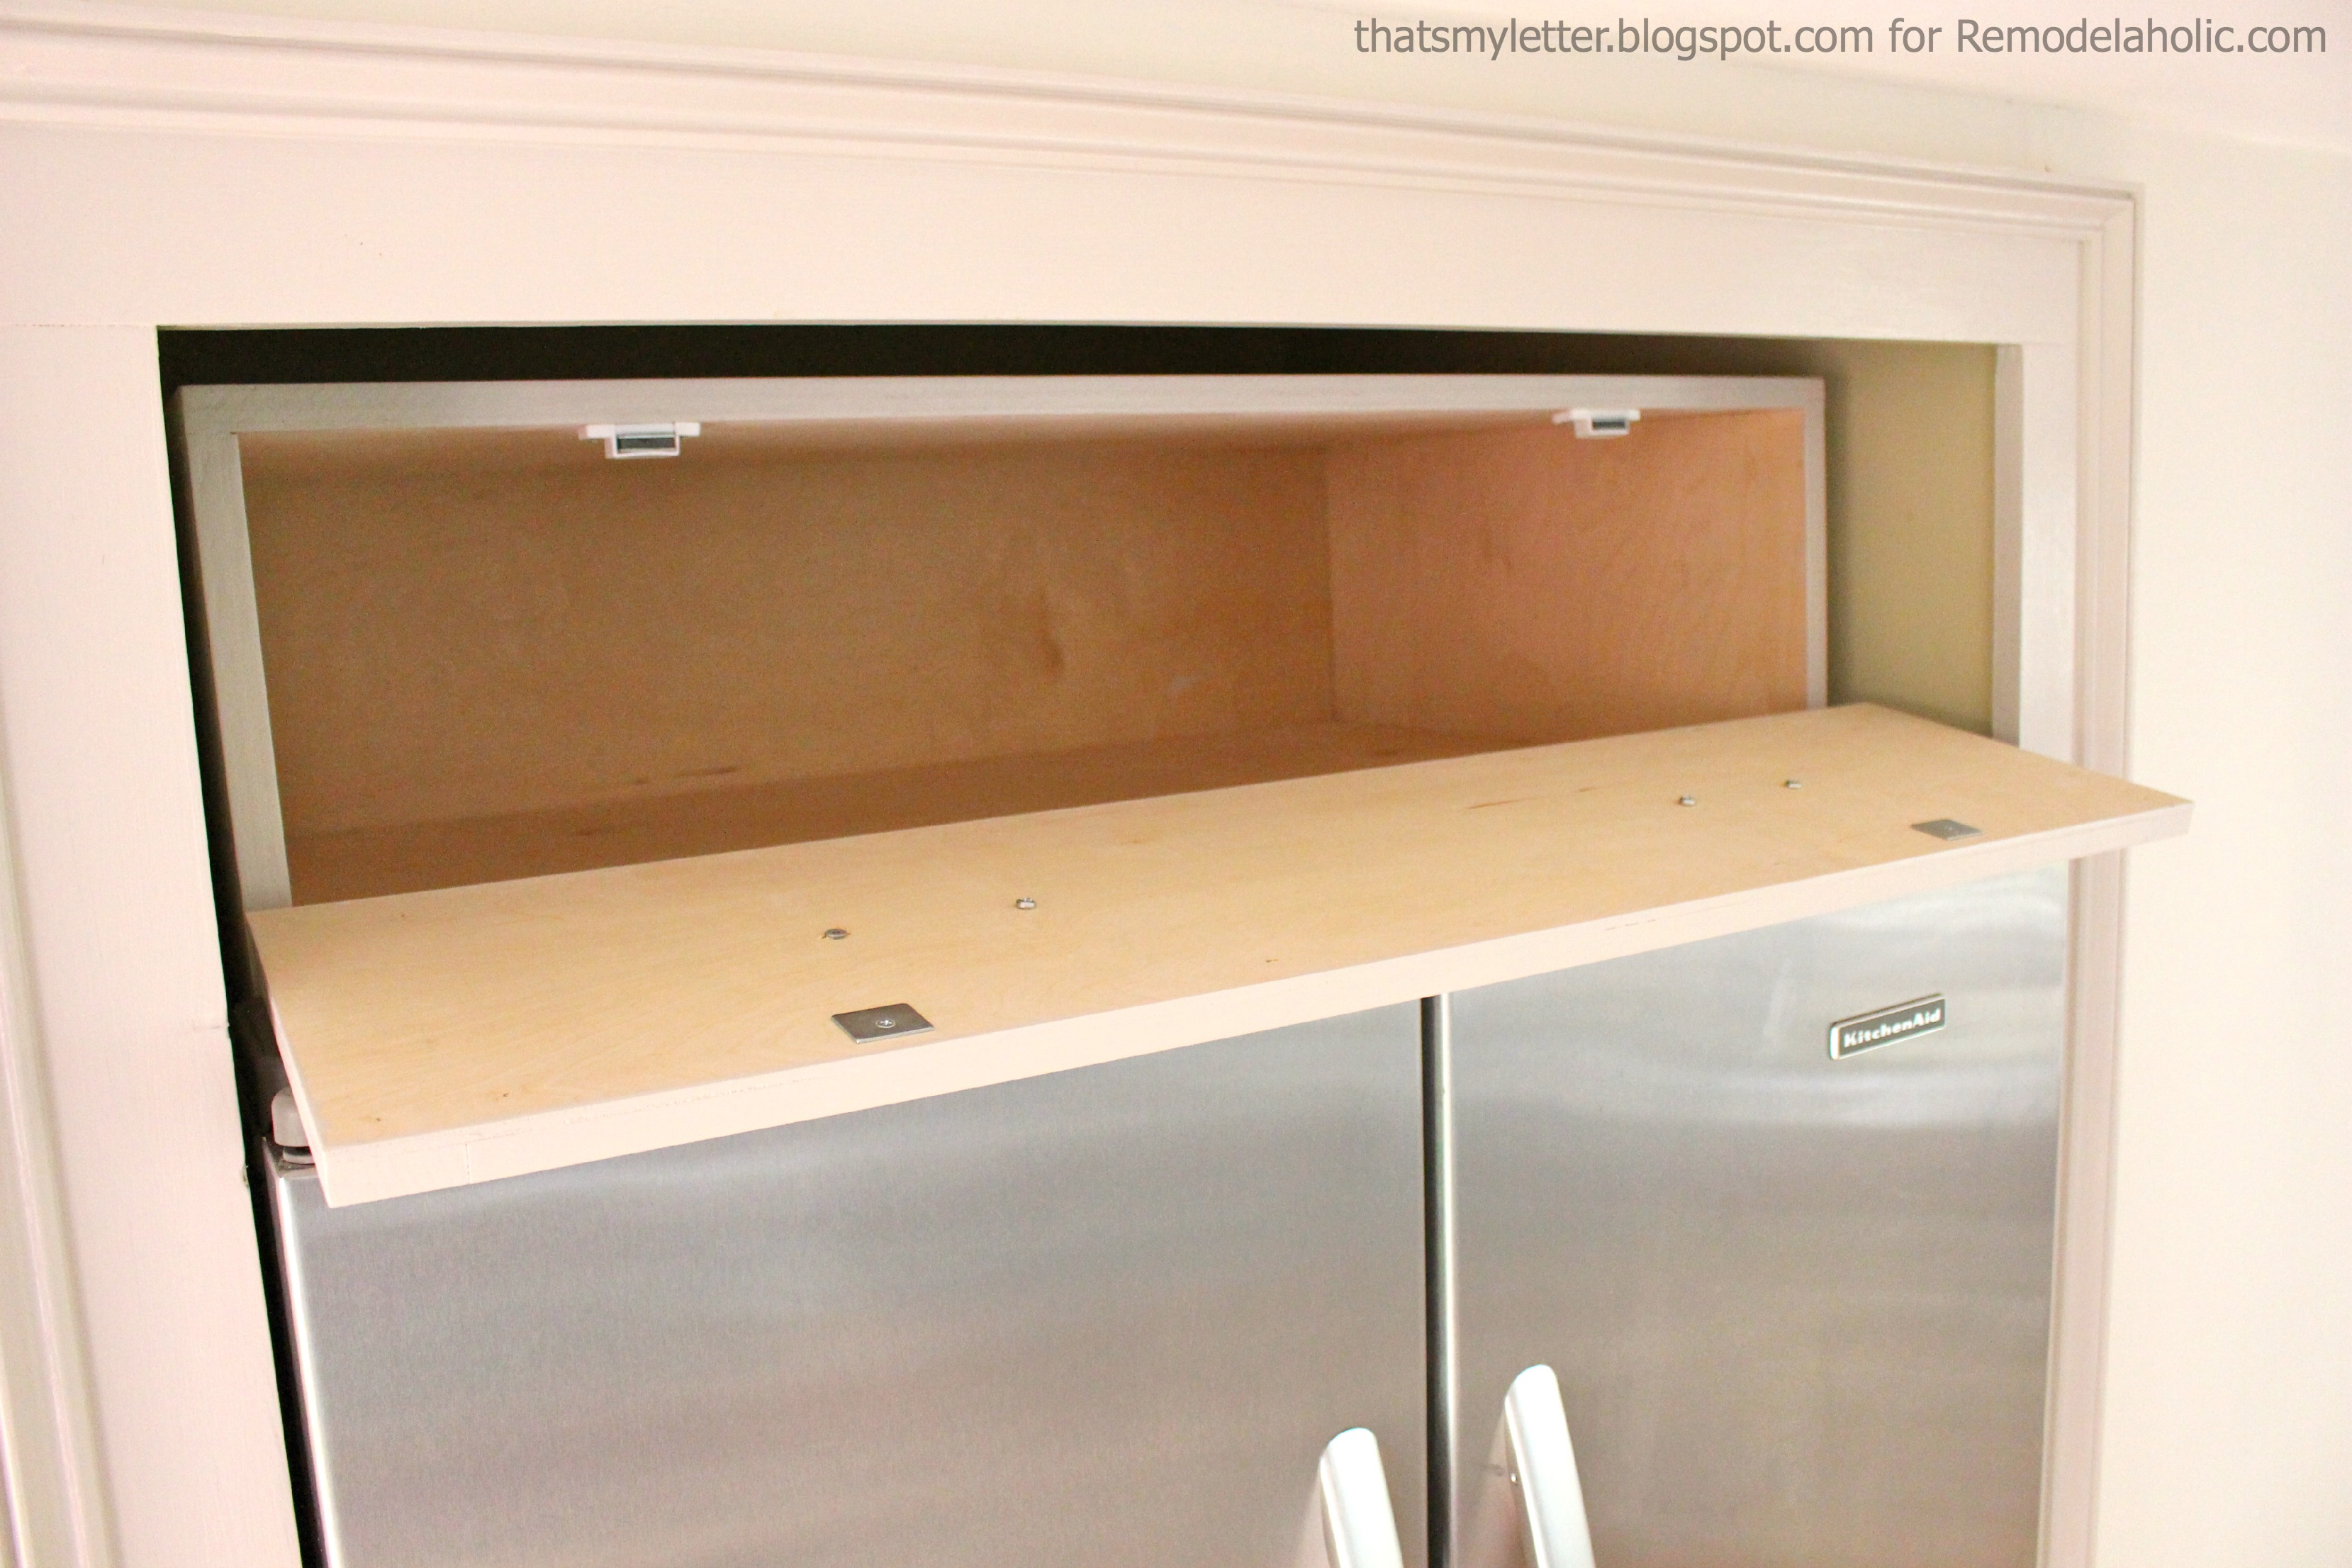 remodelaholic | build a cabinet over the fridge